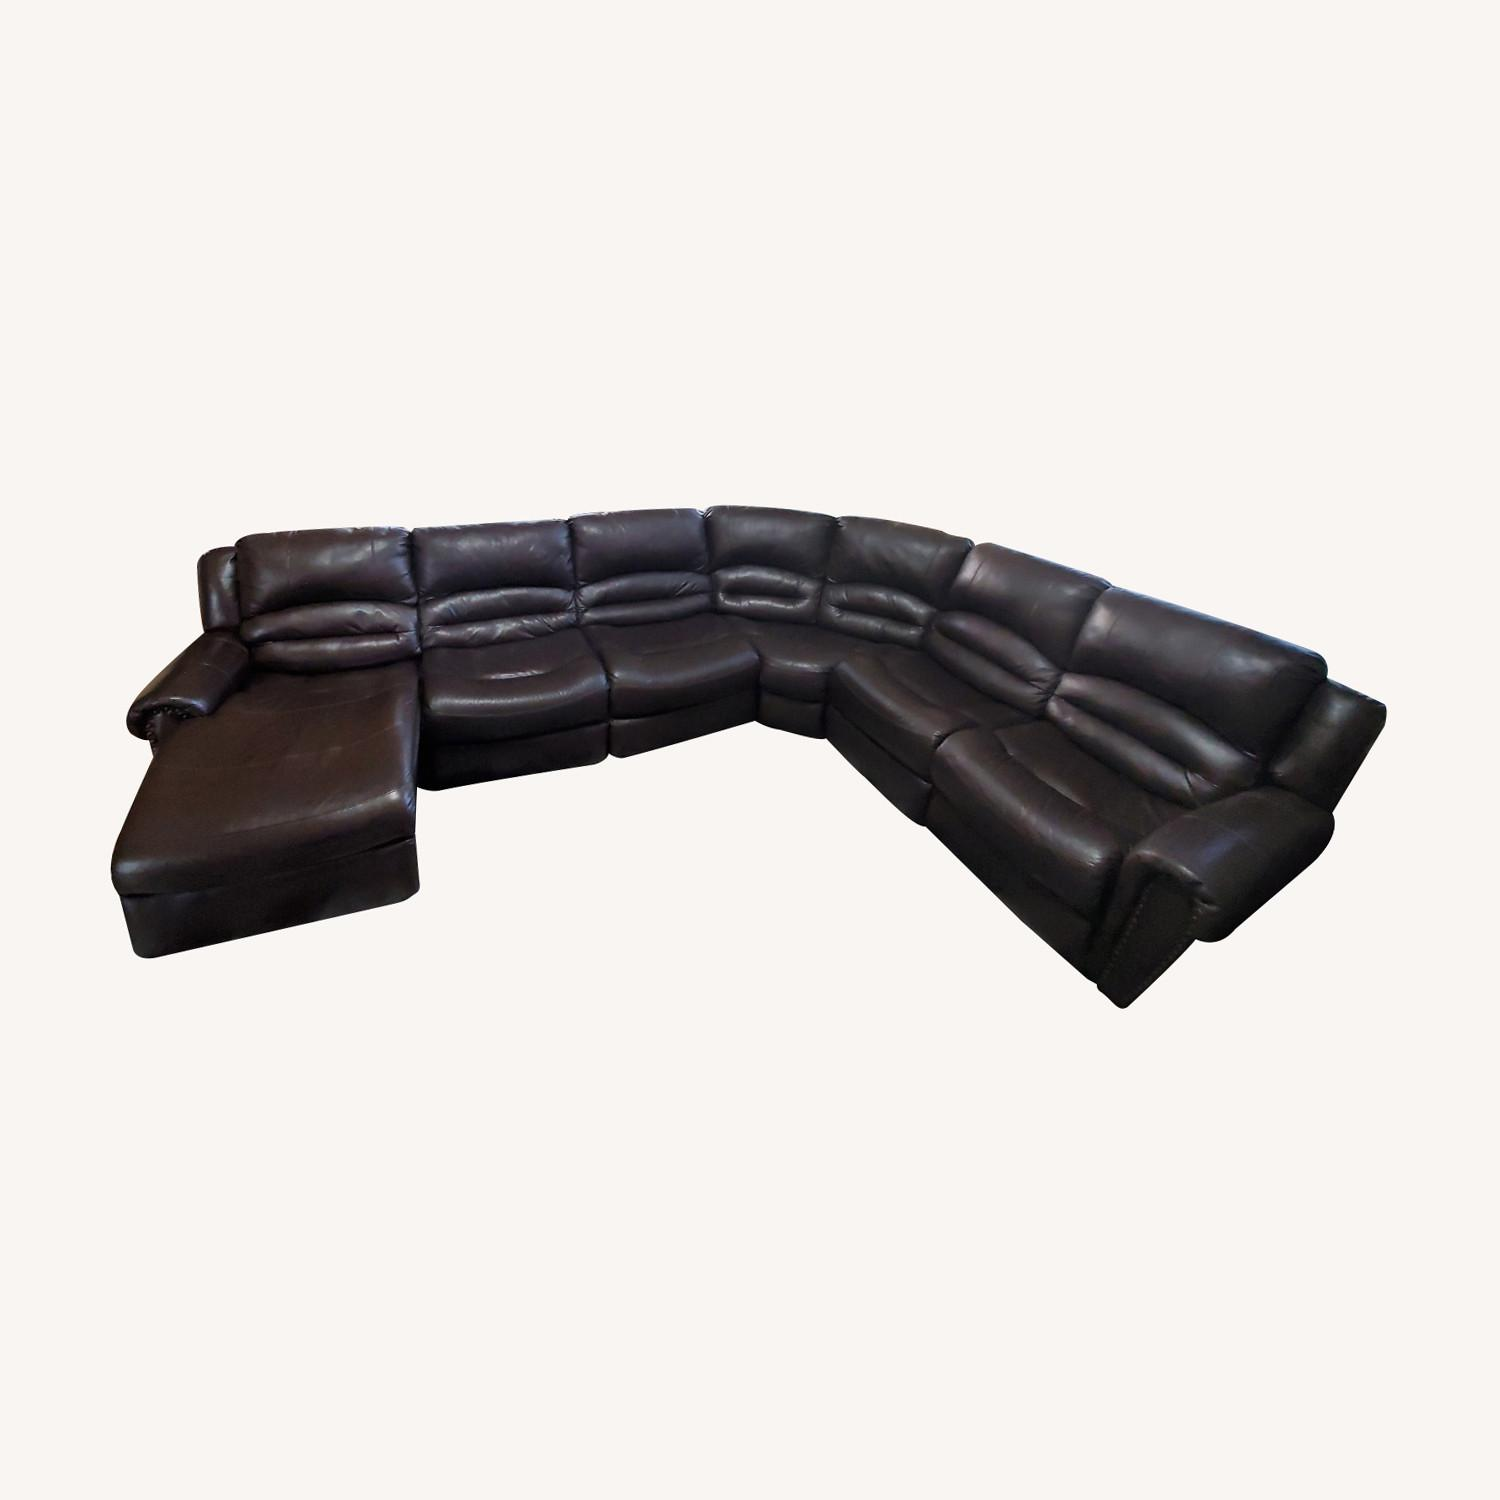 Power Reclining Leather Couch with Chaise - image-0